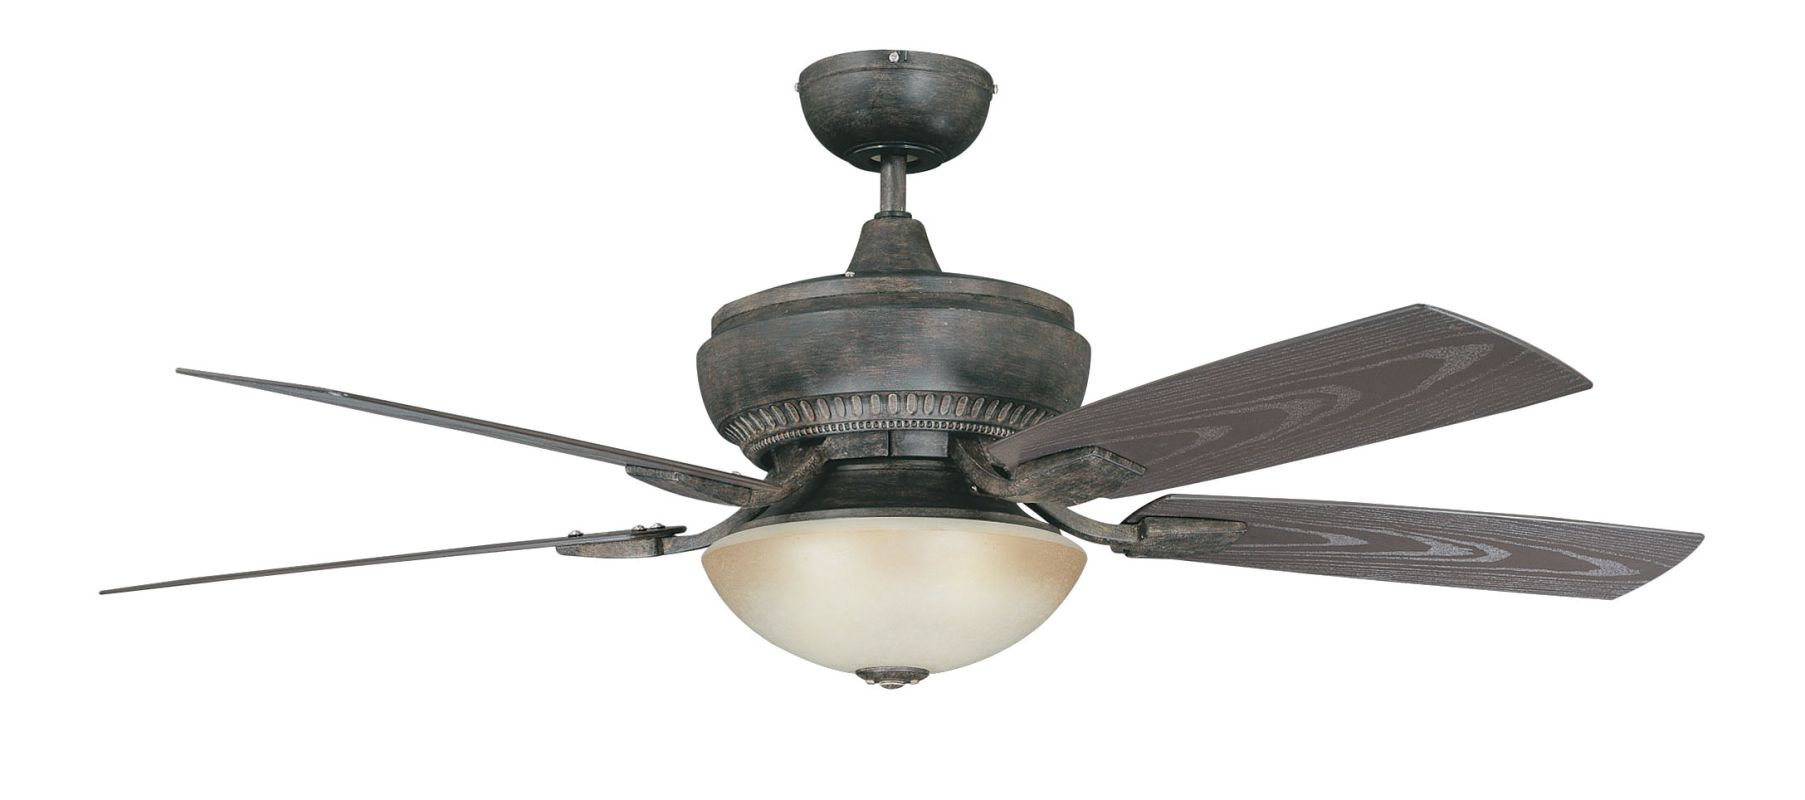 "Concord 52BW5 5 Blade 52"" Ceiling Fan - Blades Included - from the Sale $350.00 ITEM: bci1511424 ID#:52BW5AP :"